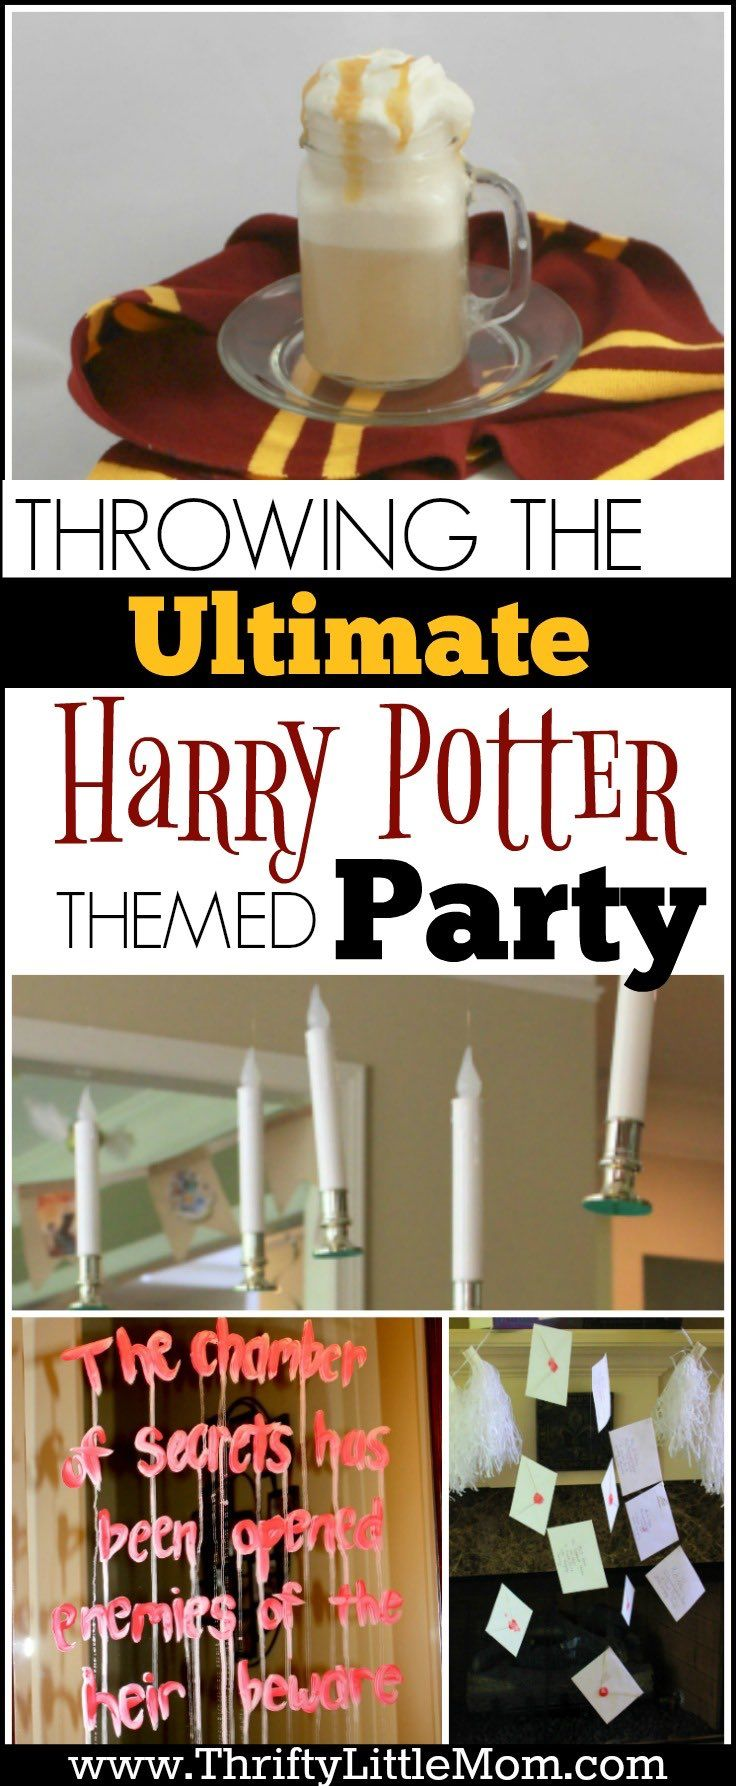 Want ideas on throwing the ultimate Harry Potter Themed Party? We've got a ton of DIY and even non DIY ideas to make your party magical.